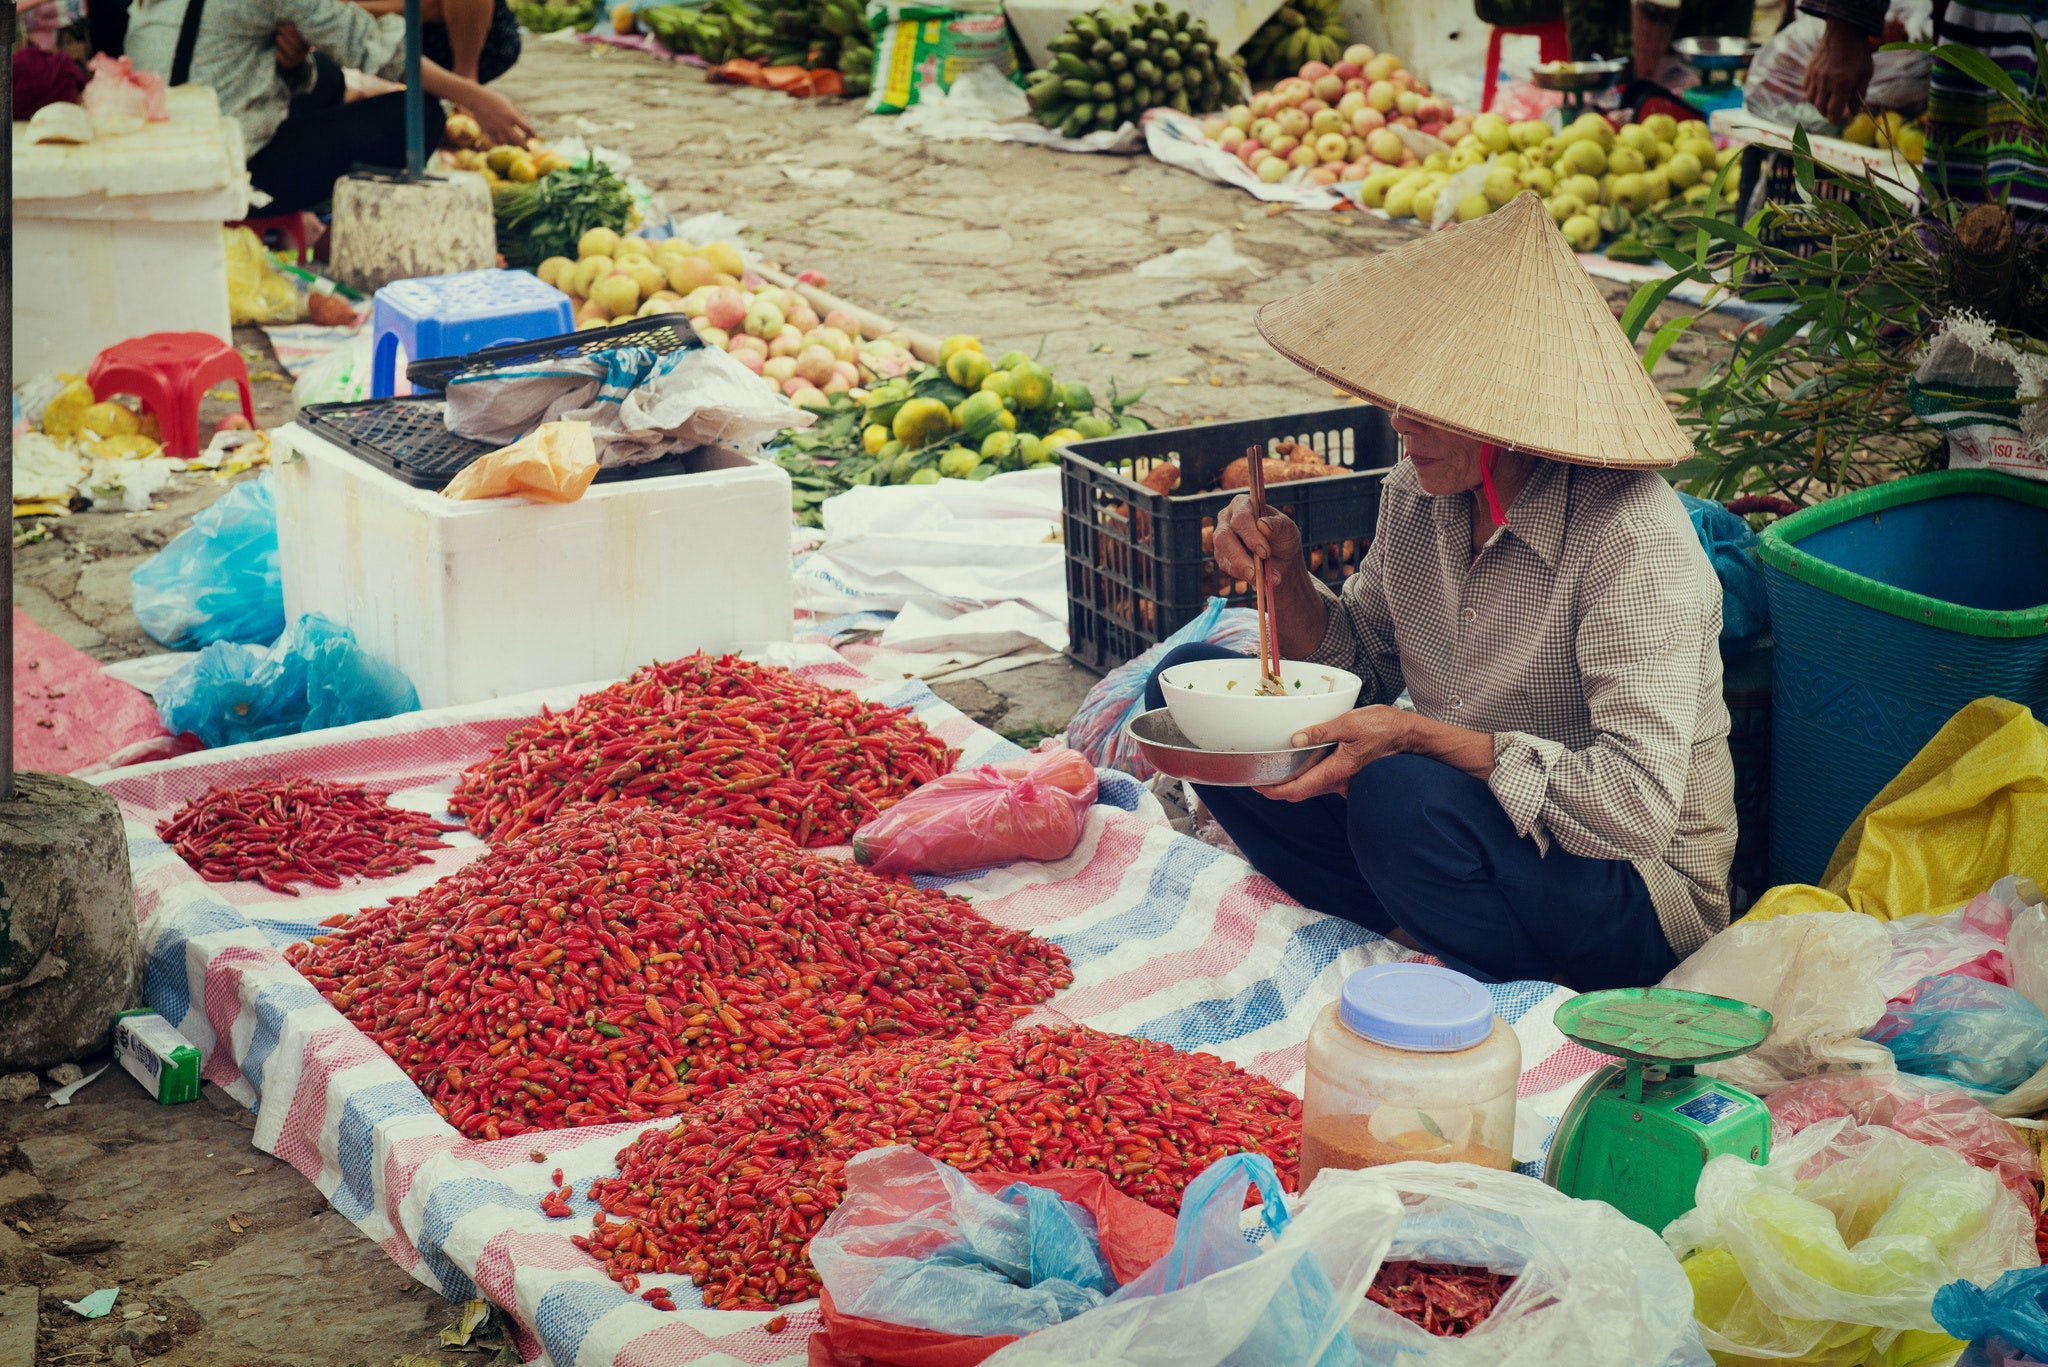 A pepper vendor eats lunch while peddling her wares in Vietnam.